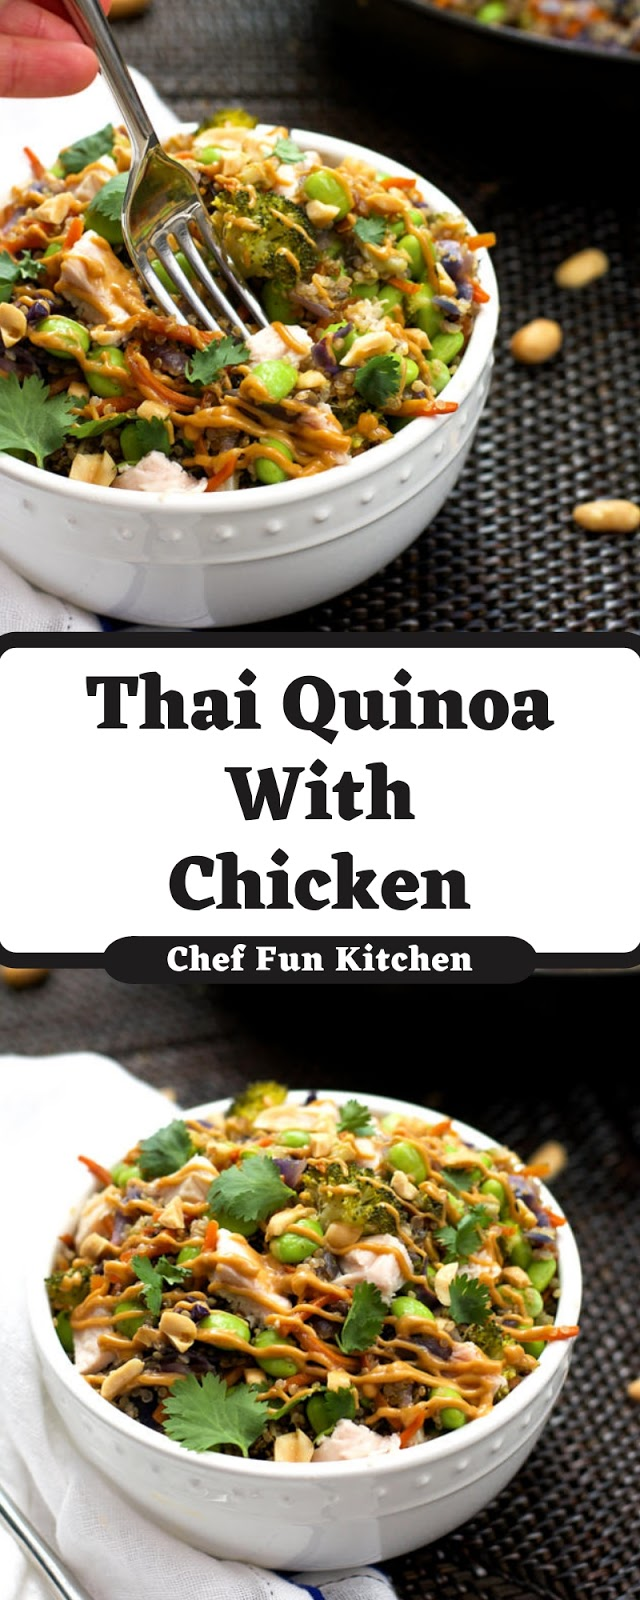 Thai Quinoa With Chicken